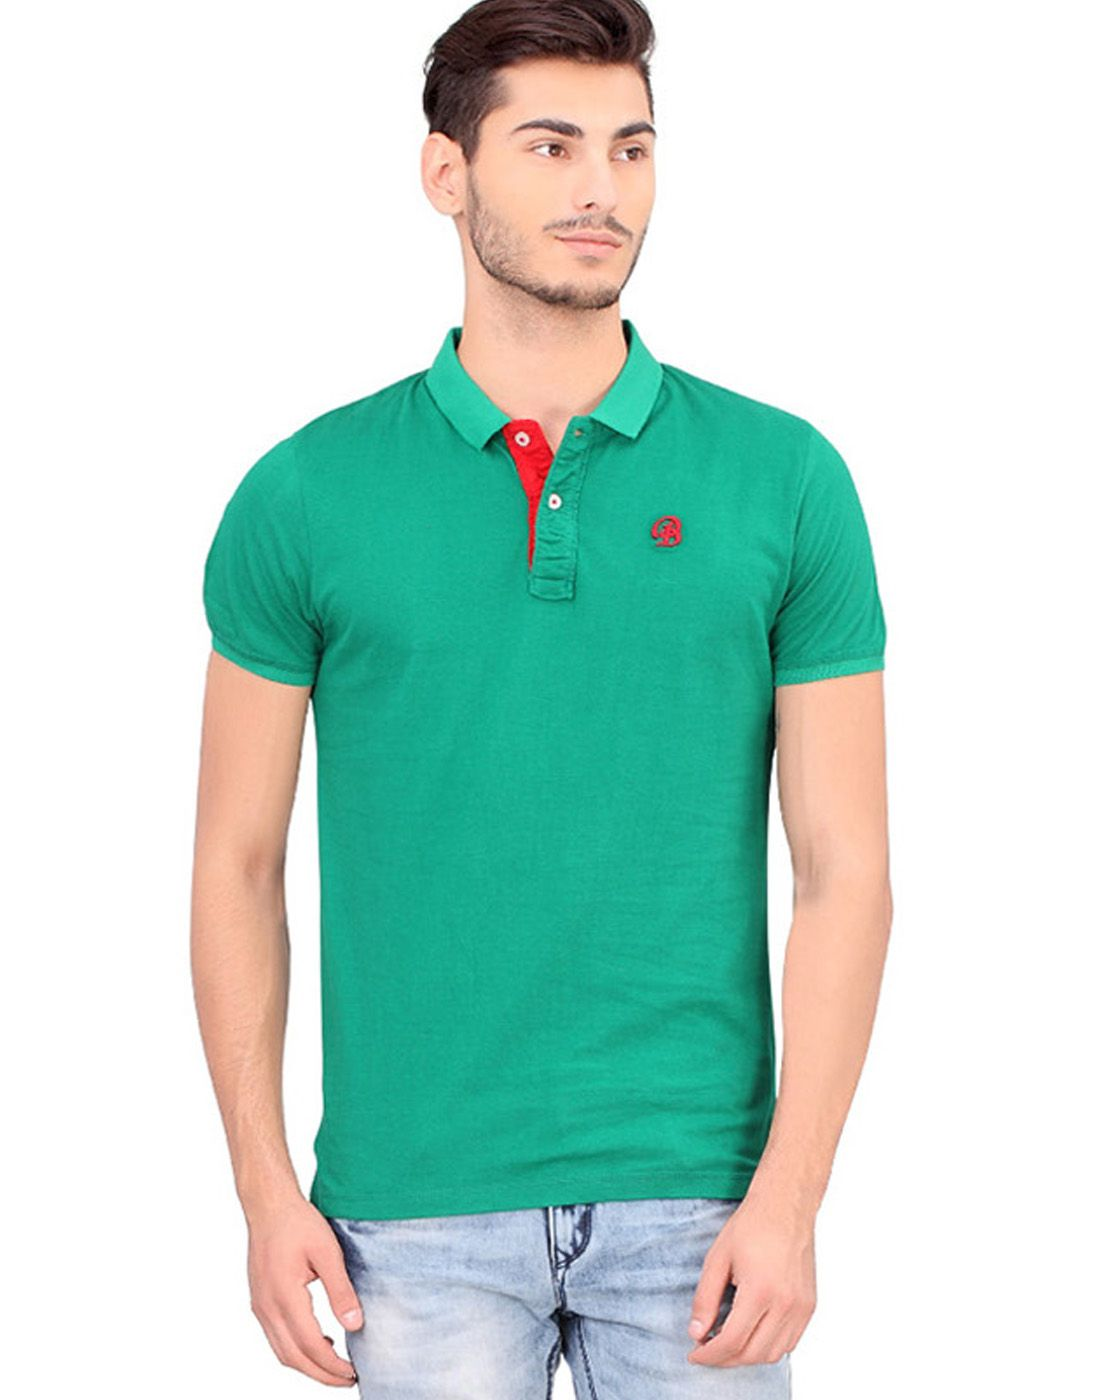 BONATY Green 100% Cotton Peach Finish Polo Neck Solid T-Shirt For Men